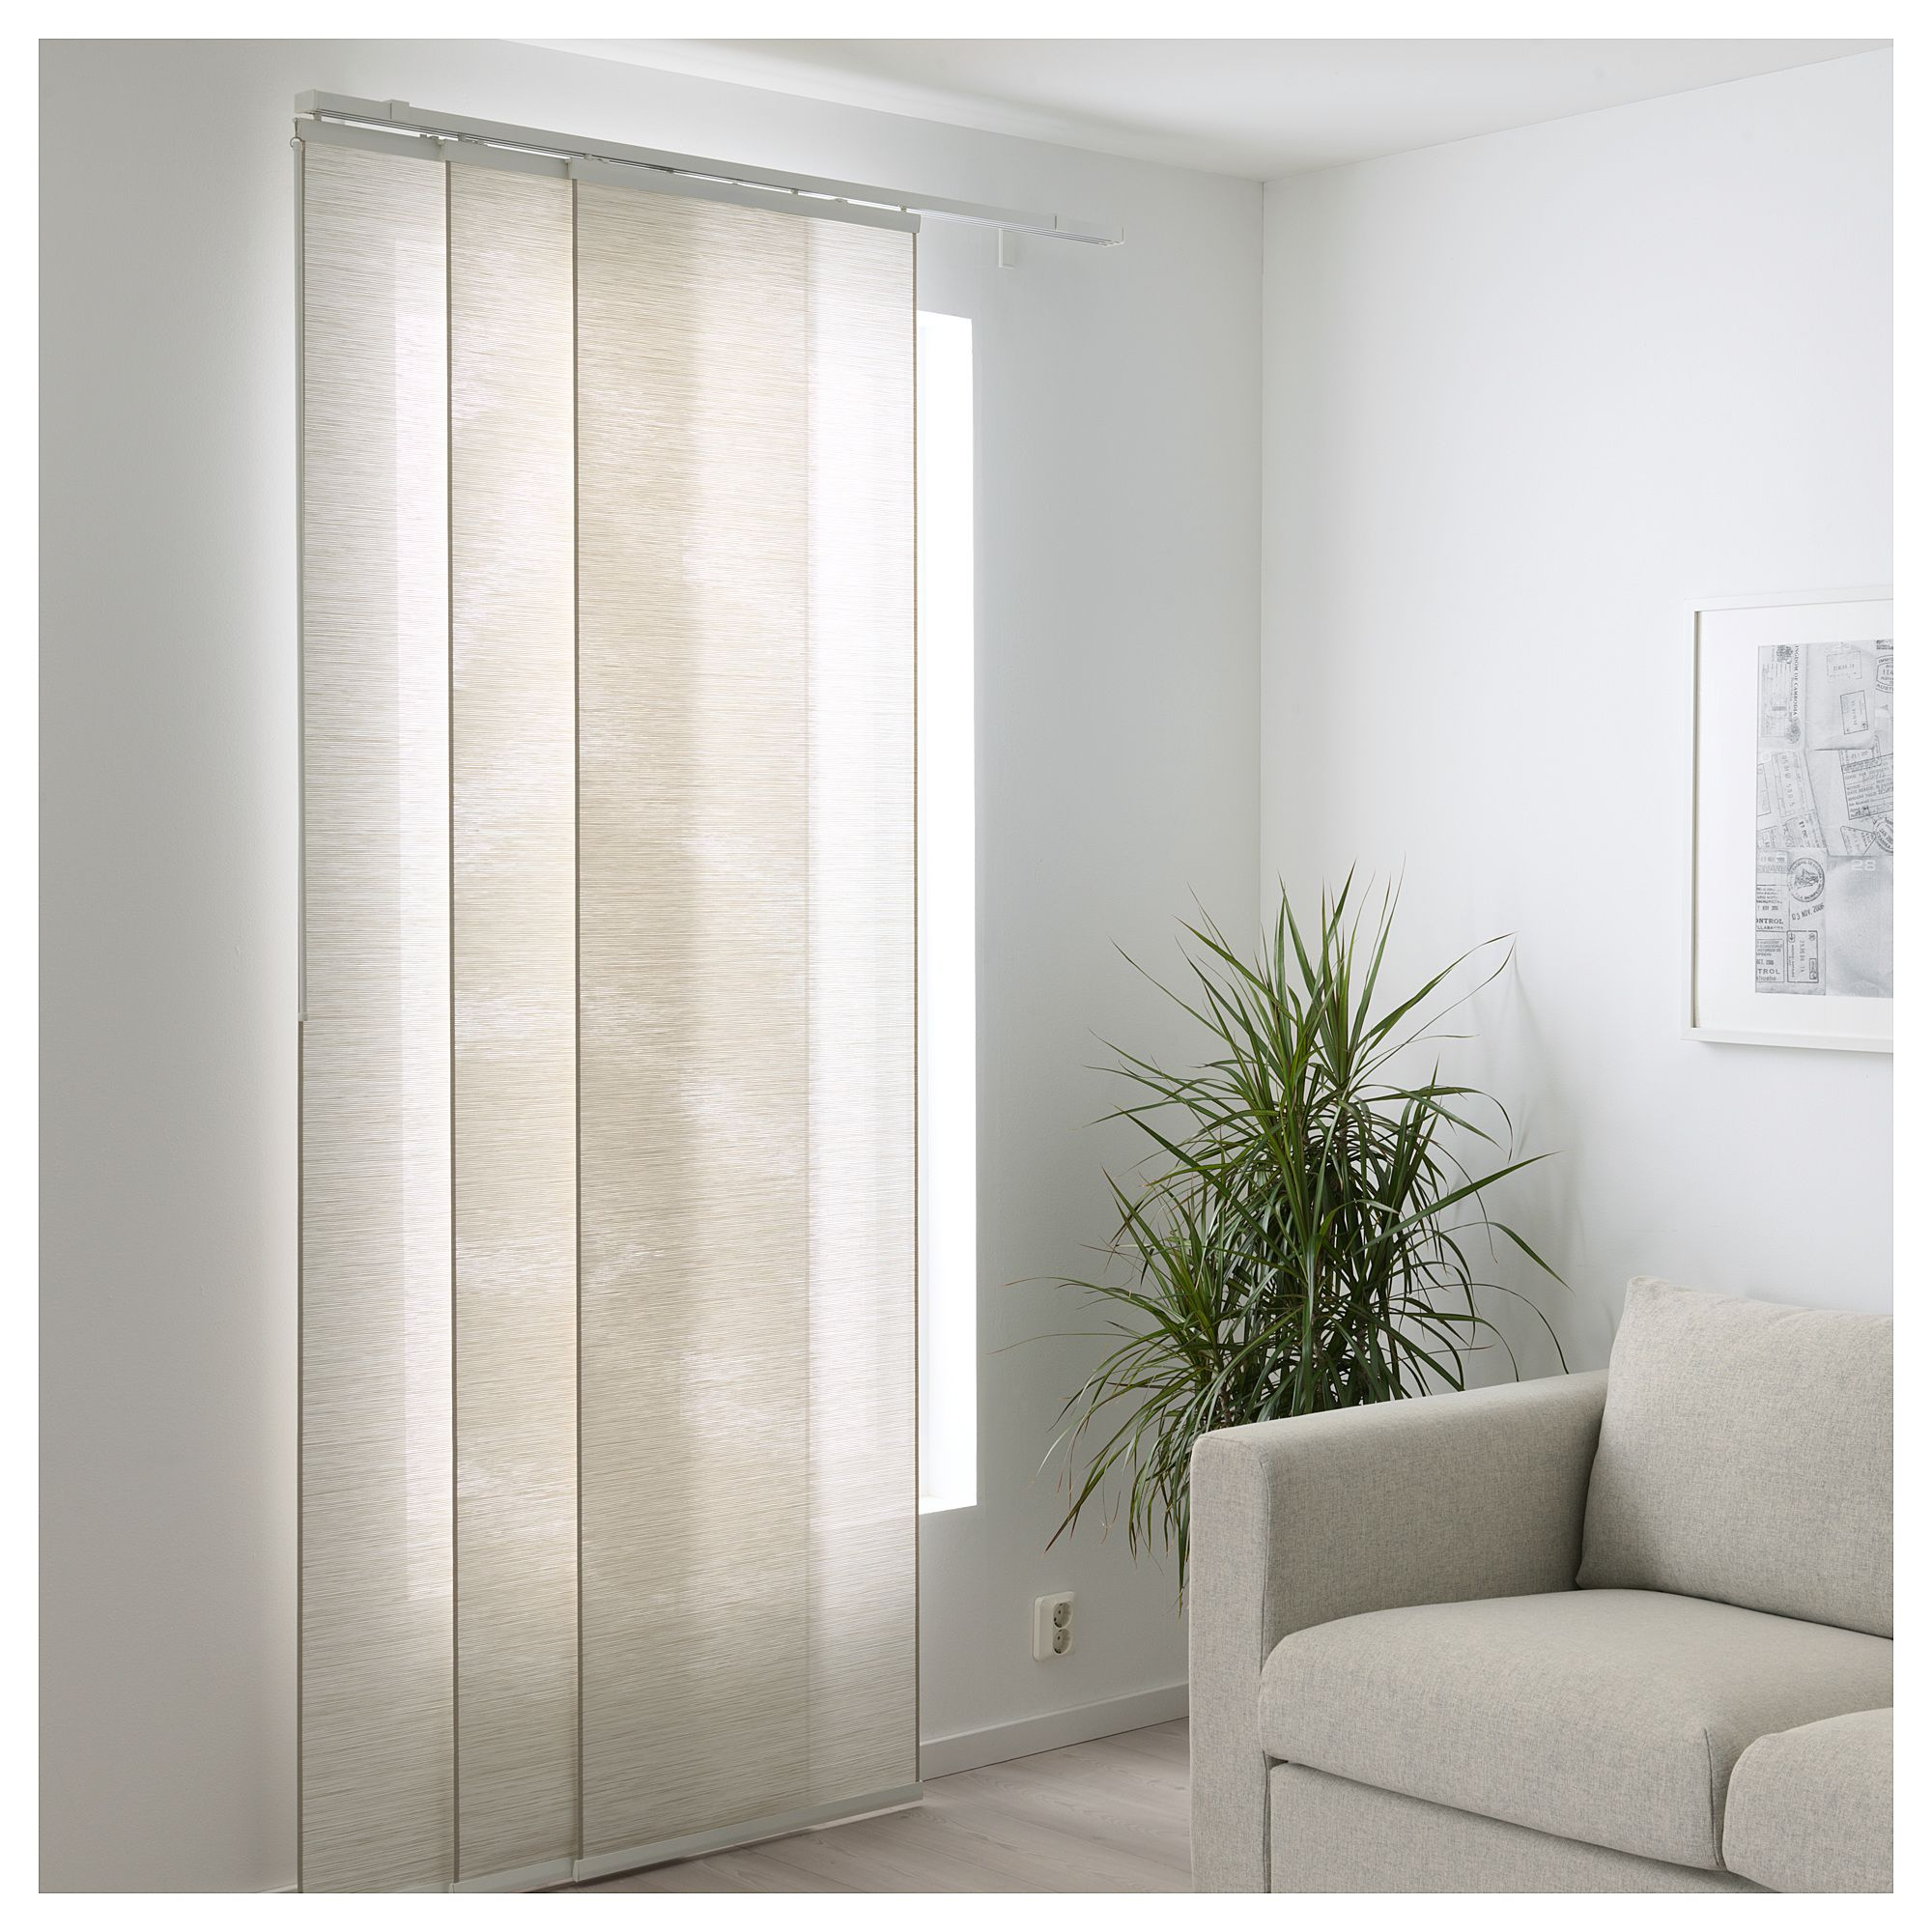 IKEA - FÖNSTERVIVA Panel curtain white/beige | HILARIOUS- in